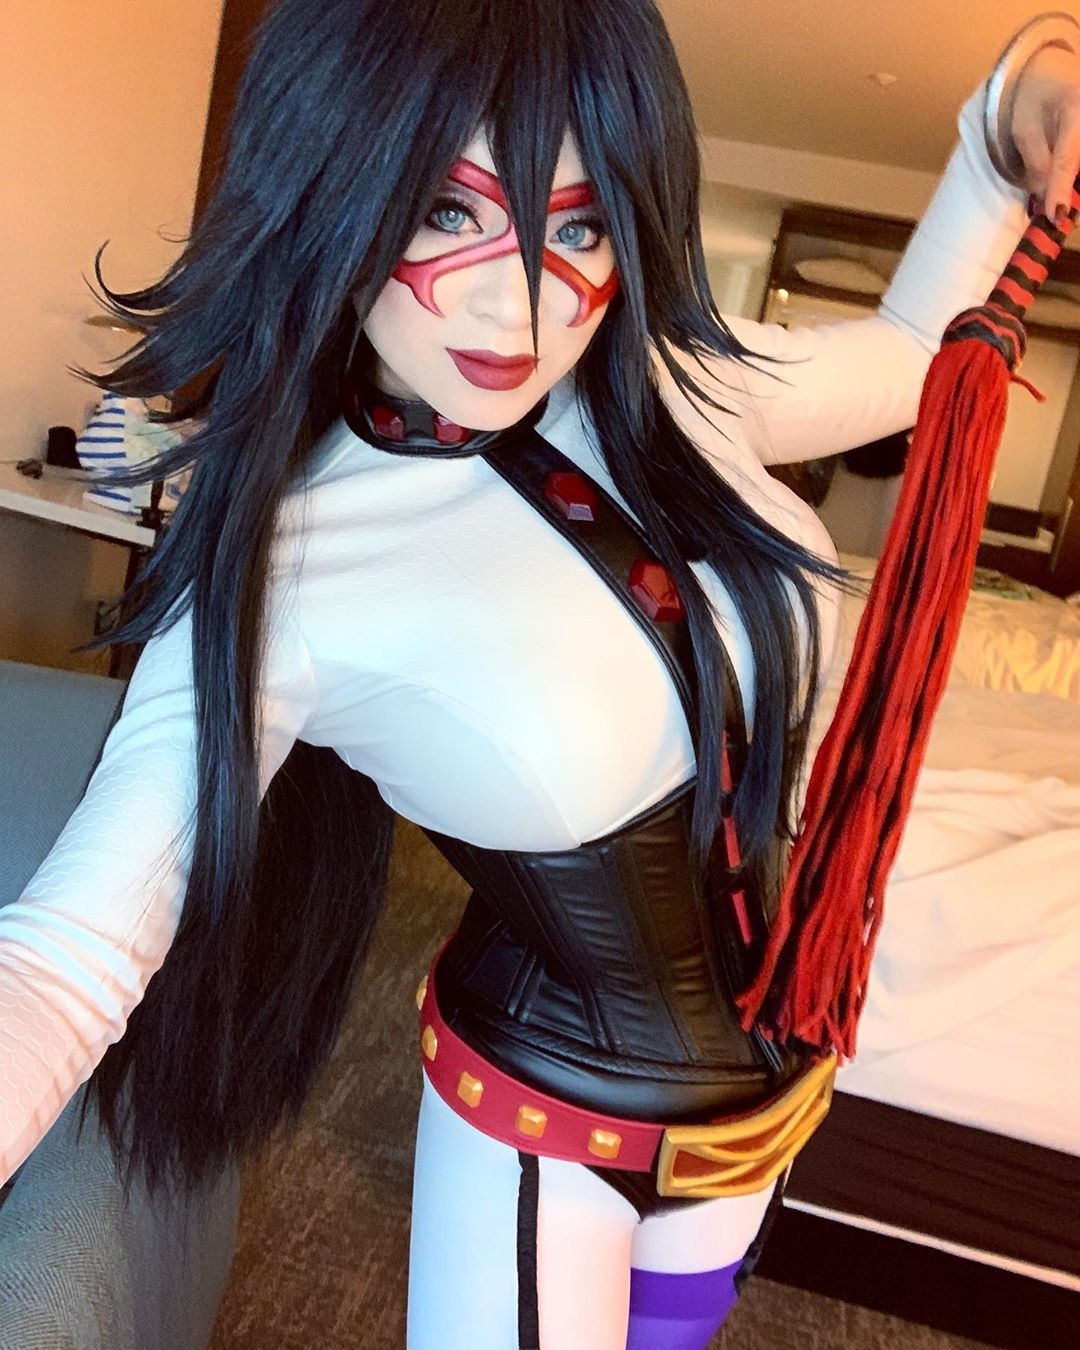 Midnight Sensei cosplay by yaya han cosplayer